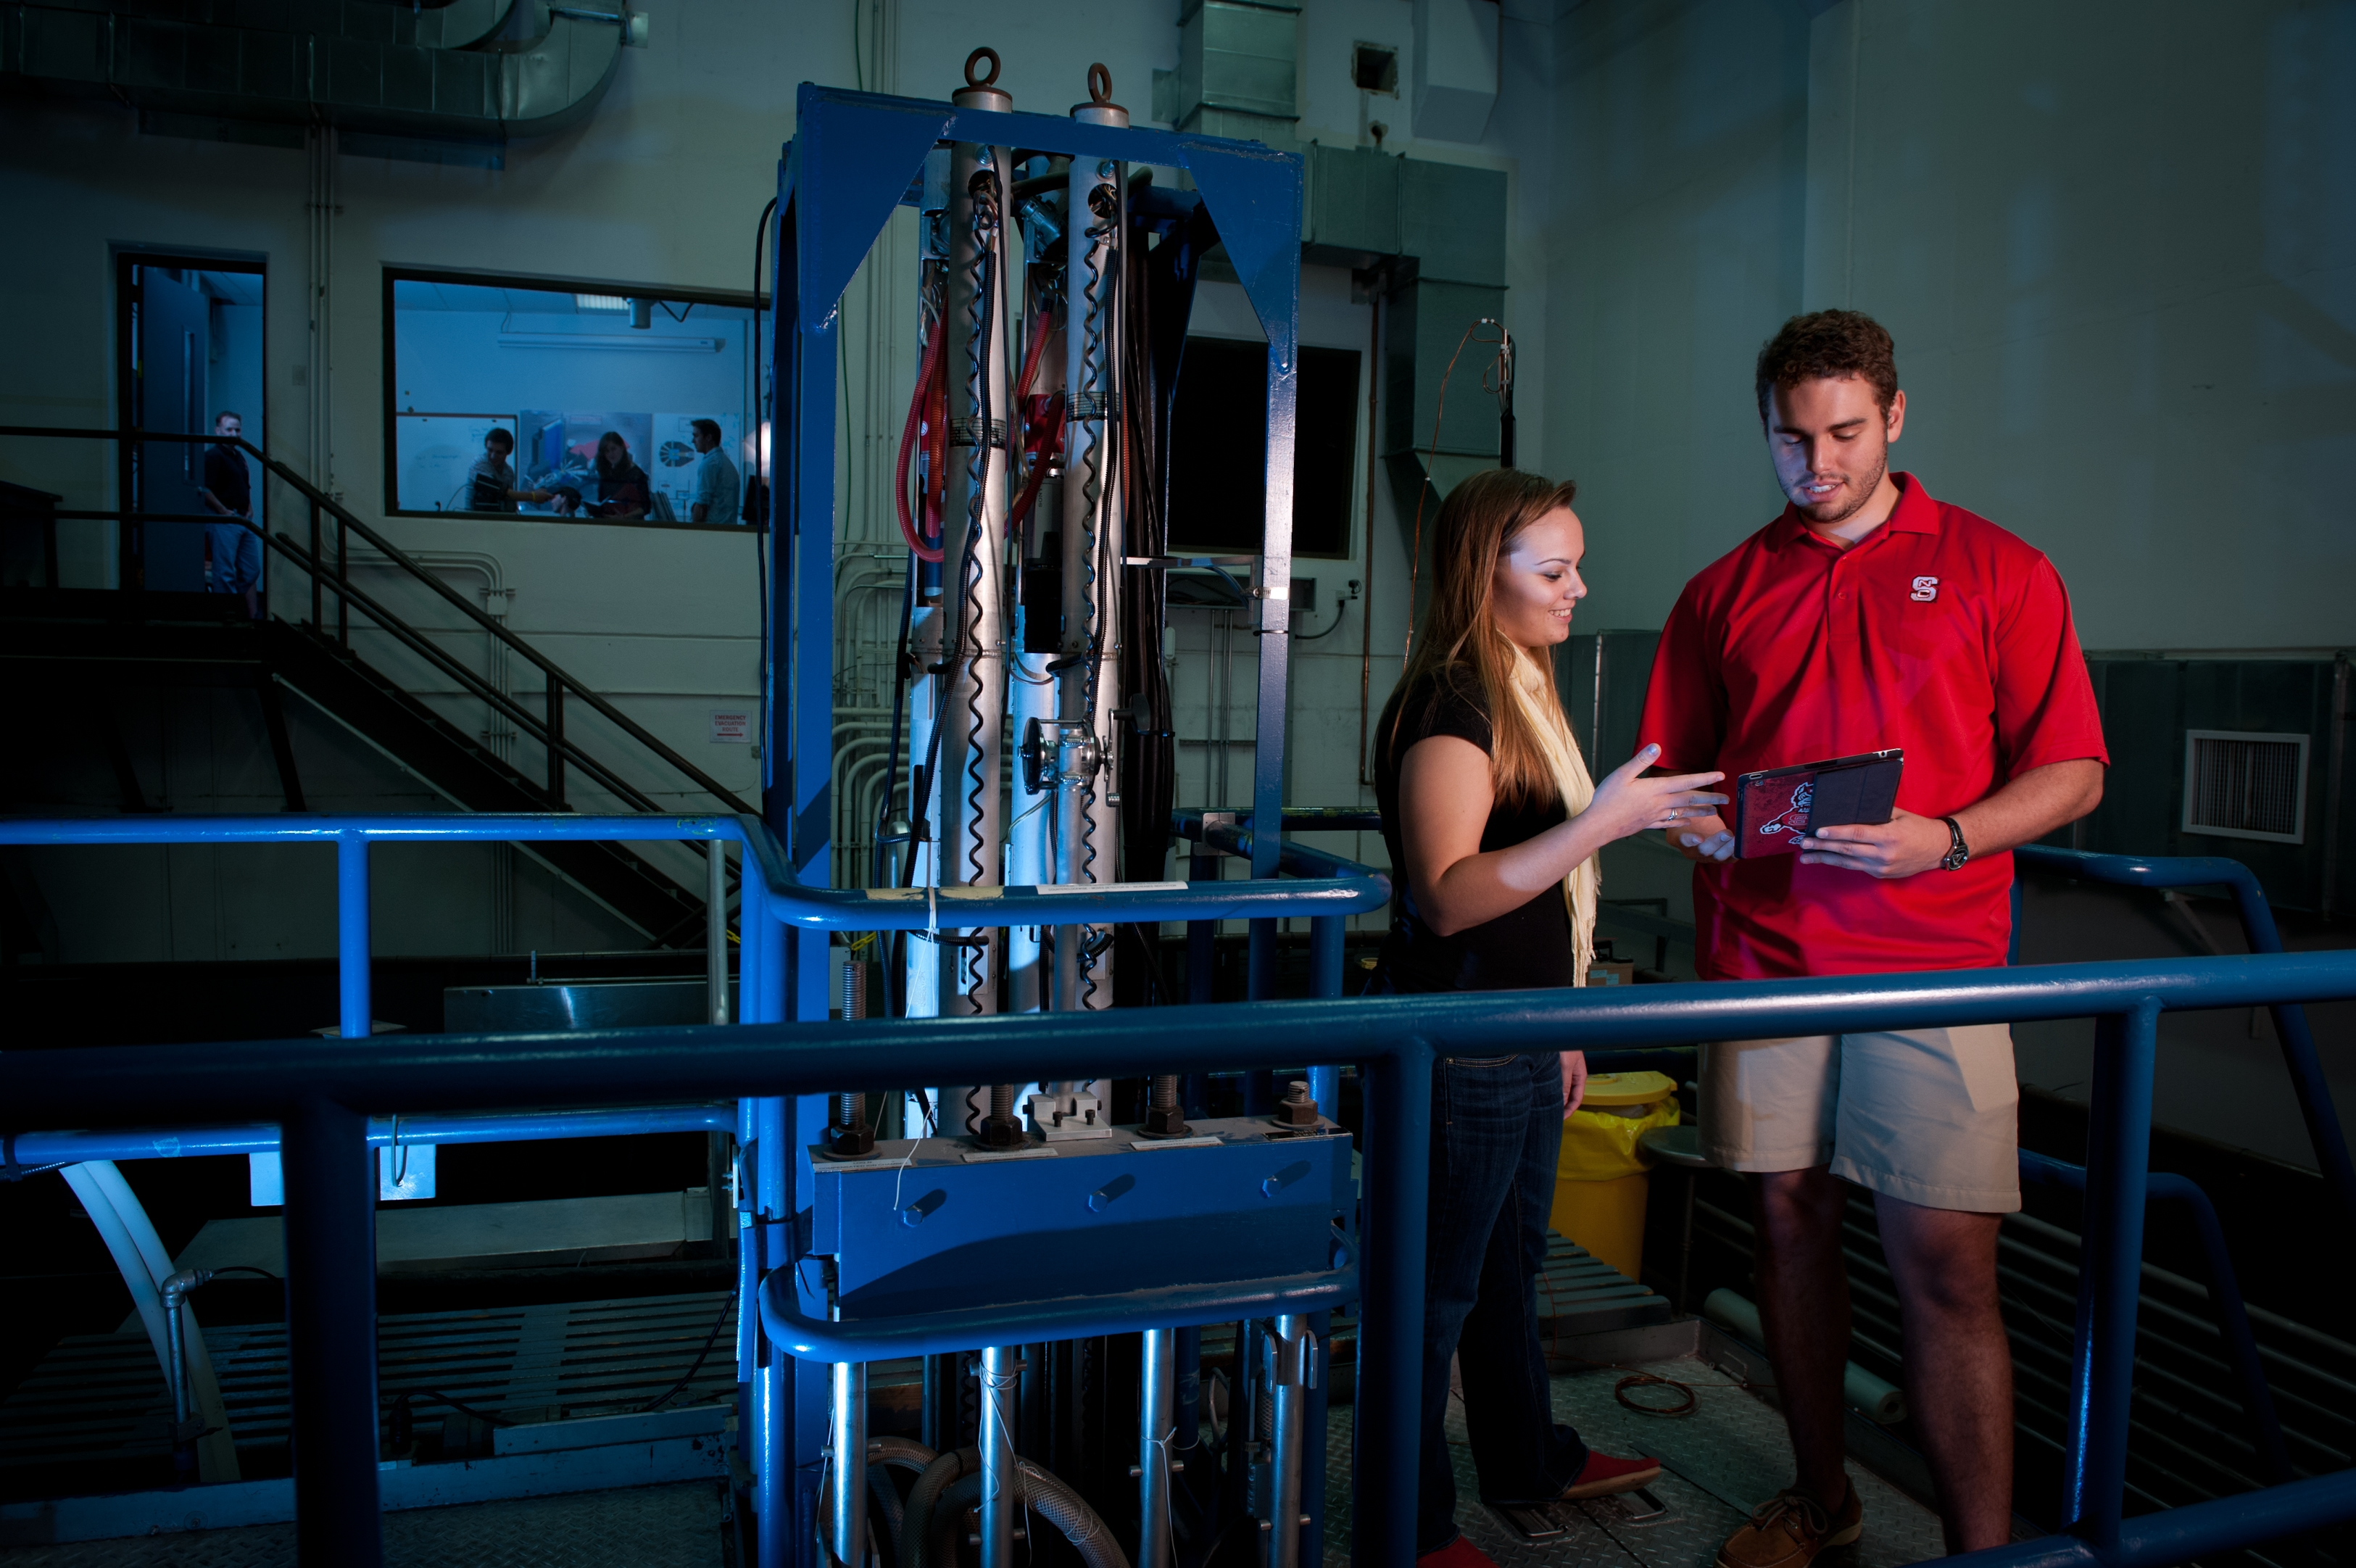 Department of Nuclear Engineering at North Carolina State University